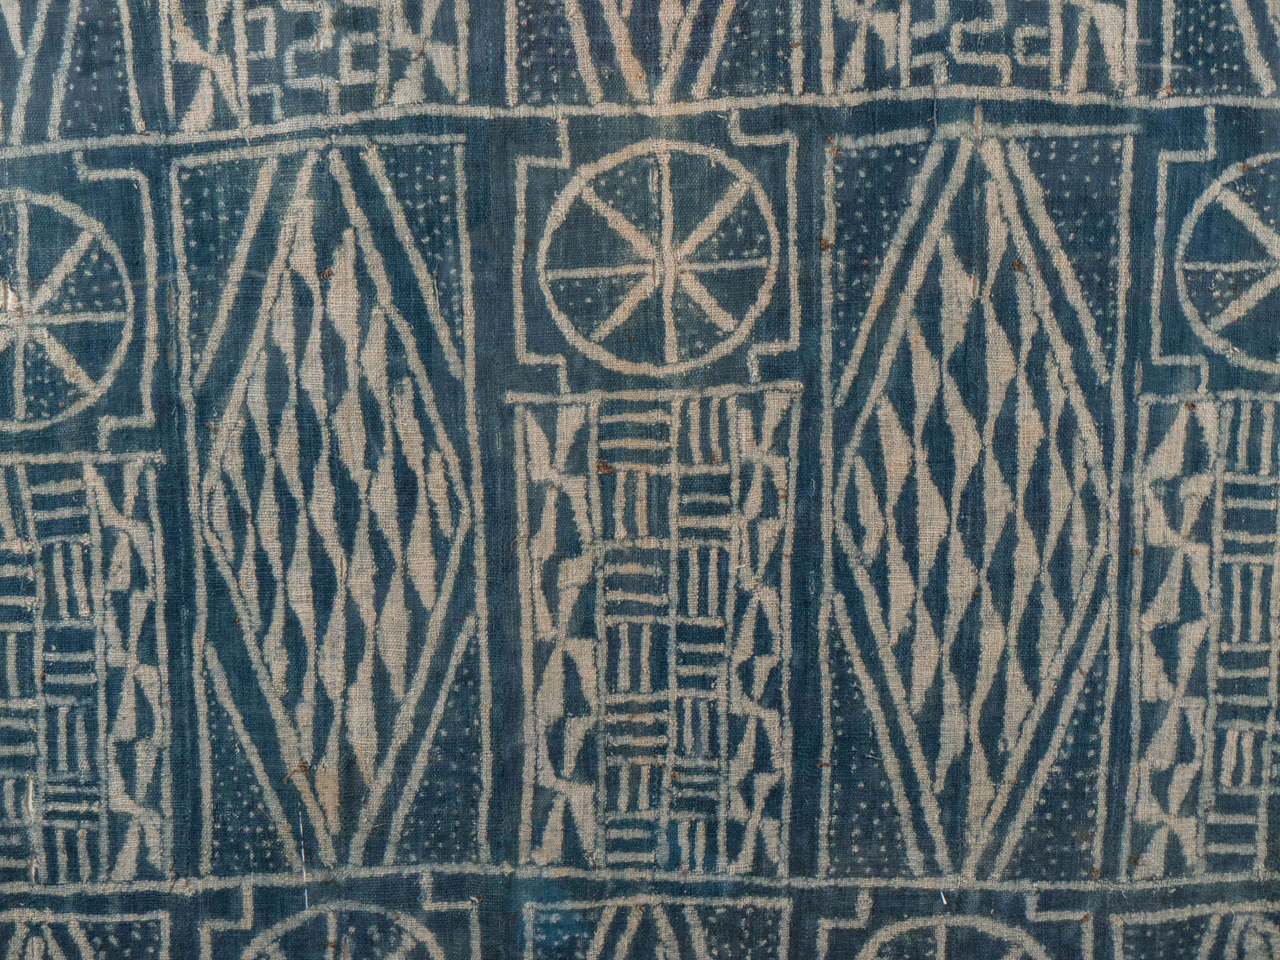 20th Century African Cameroon Ceremonial Chiefs Cloth